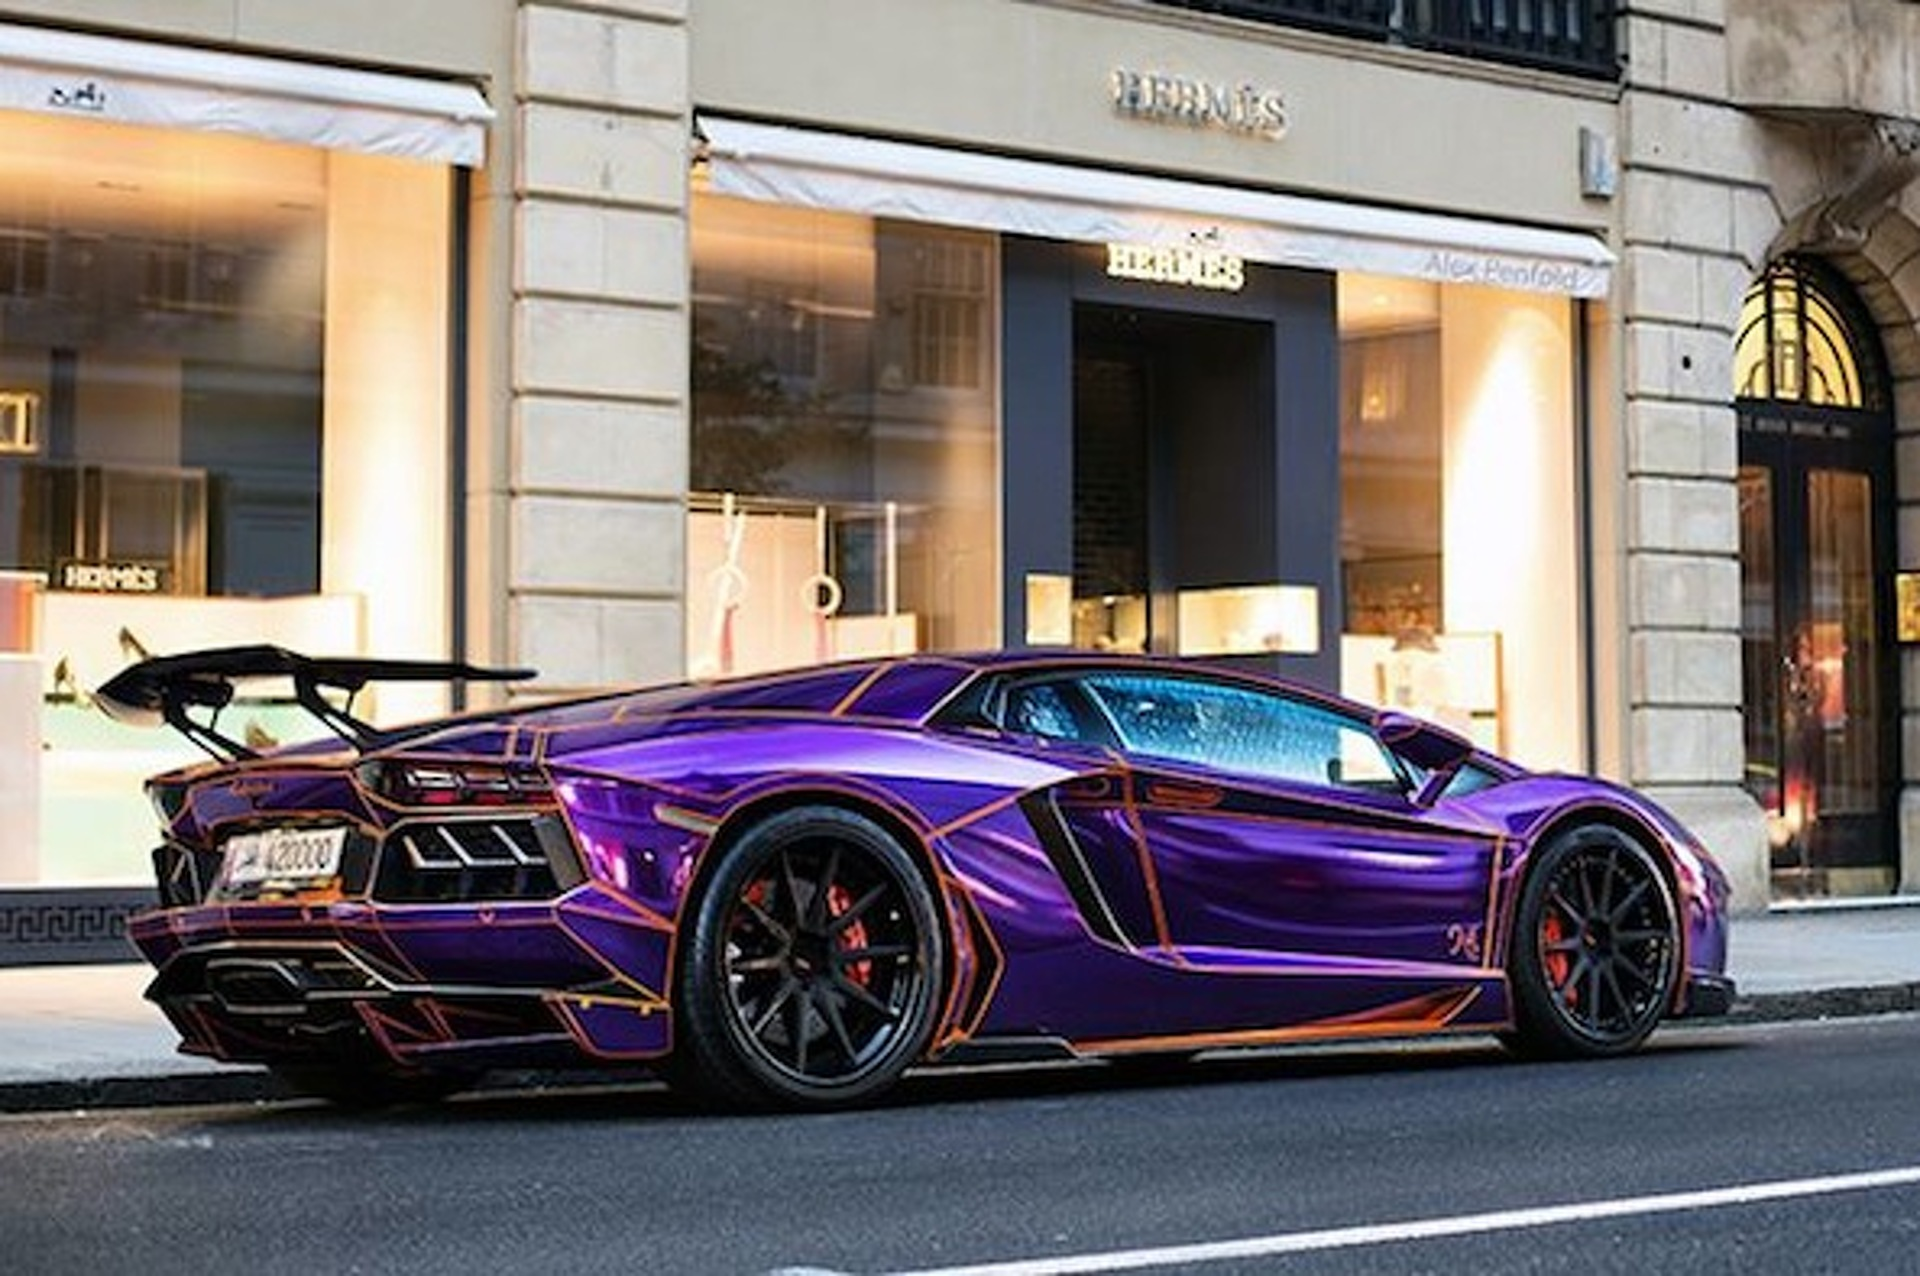 'Glow in the Dark' Lamborghini Back on the Street